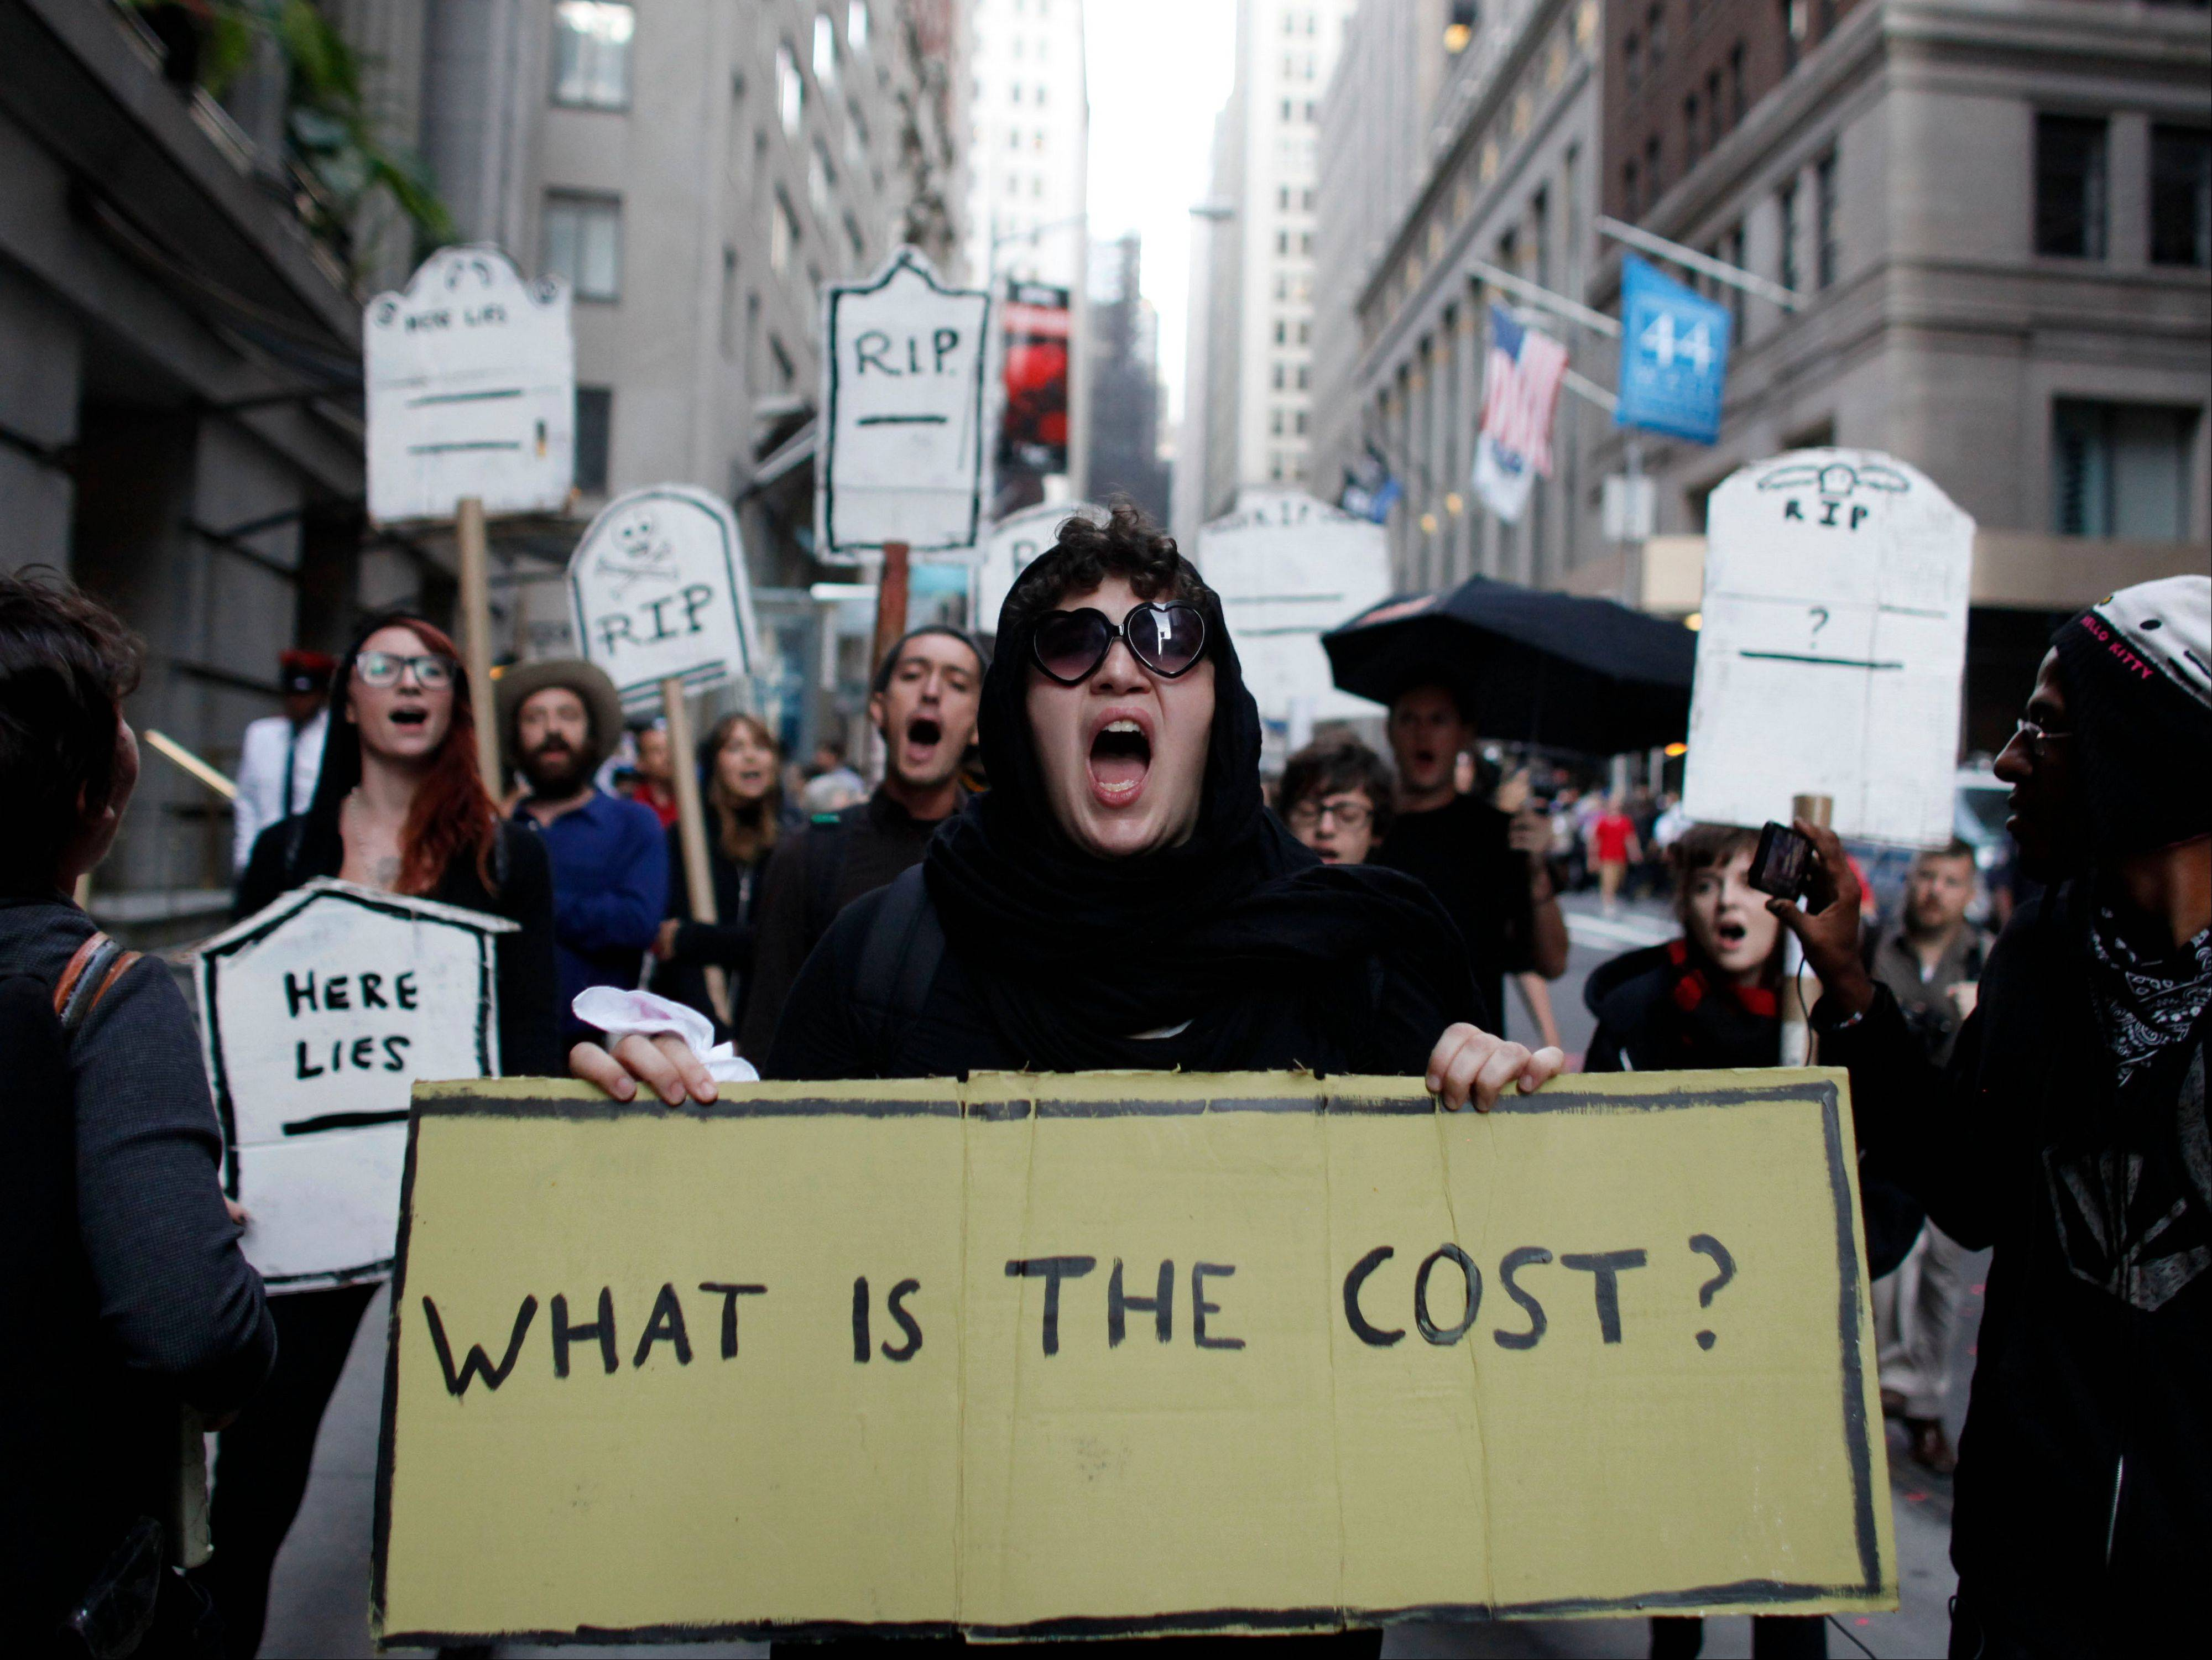 Protestors chant during an Occupy Wall Street march Monday in New York. About a dozen protestors were arrested Monday after sitting on the sidewalk.